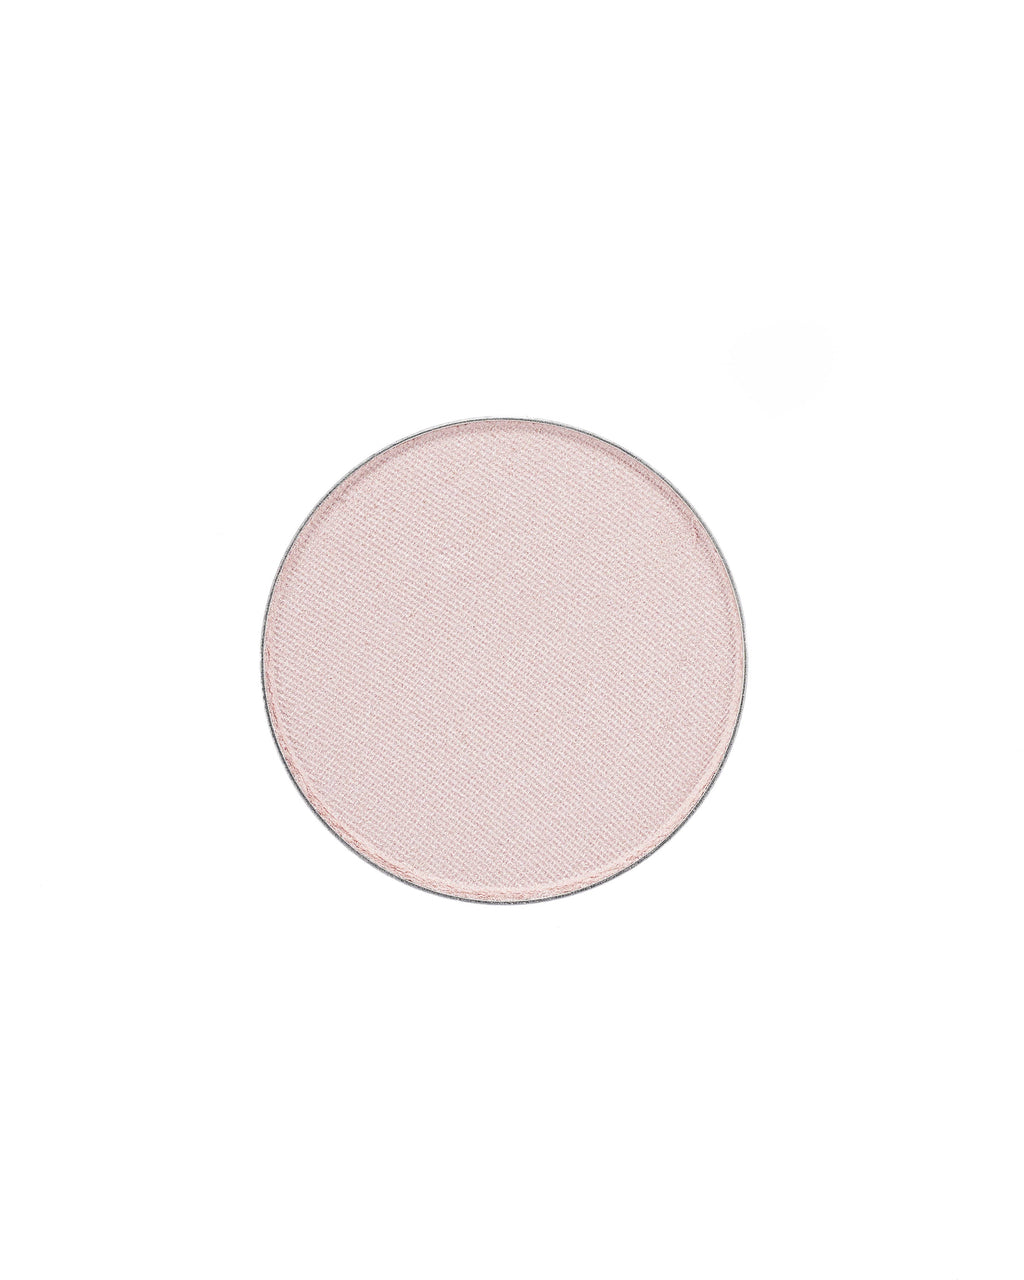 Ballerina Highlighter (Pink Champagne) Magnetic Pan